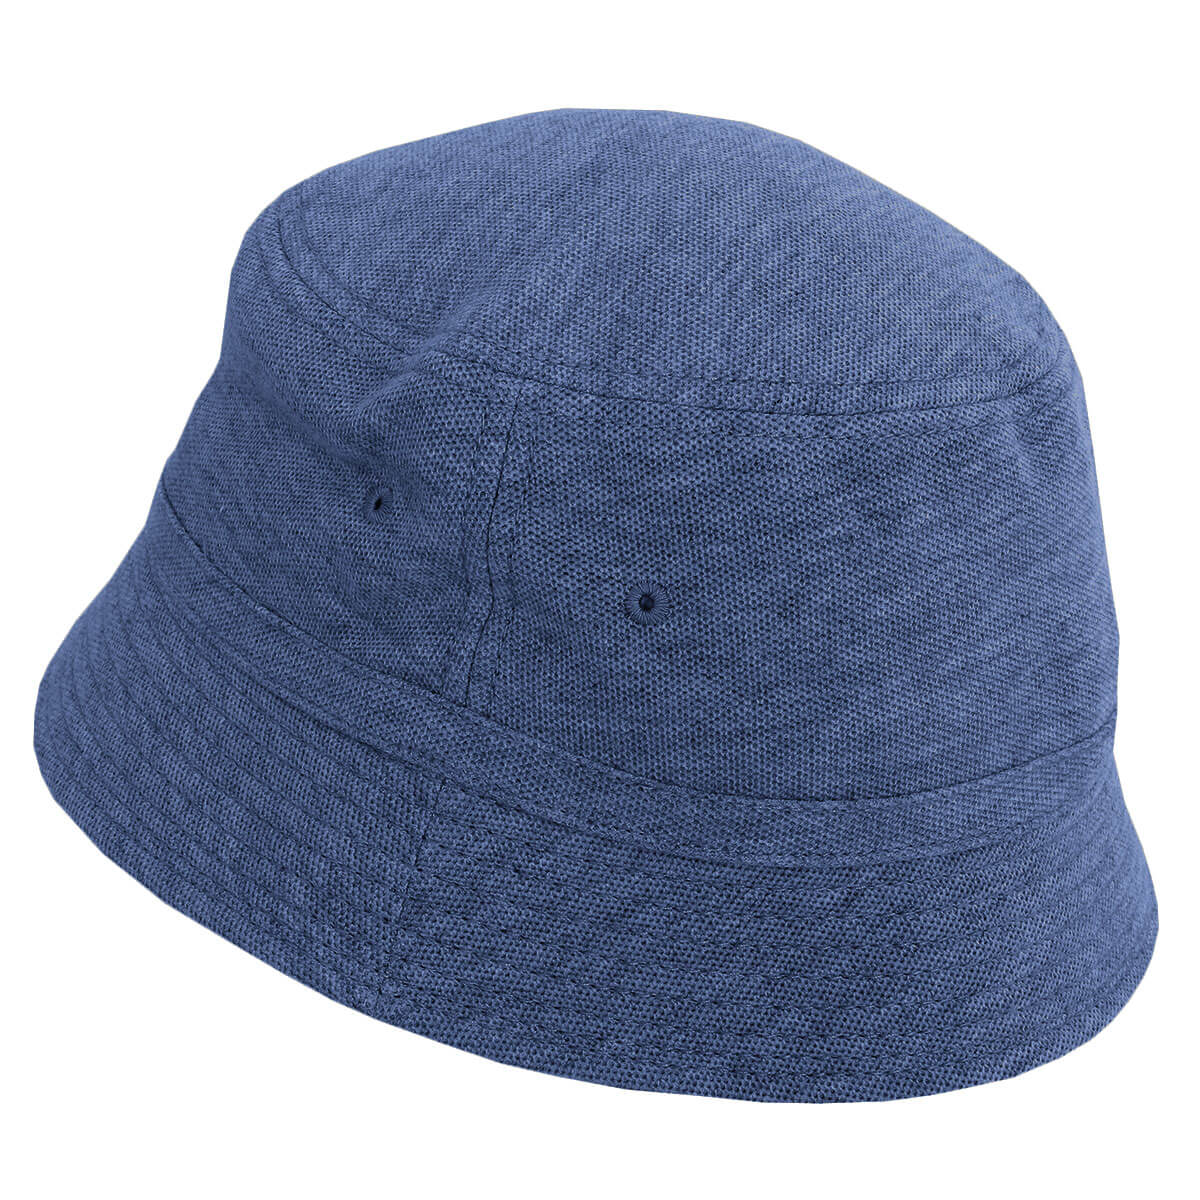 96c8b5b4bfe Lacoste Mens 2019 RK8490 Cotton Pique Bucket Hat - Cruise Chine - L. About  this product. Picture 1 of 3  Picture 2 of 3  Picture 3 of 3